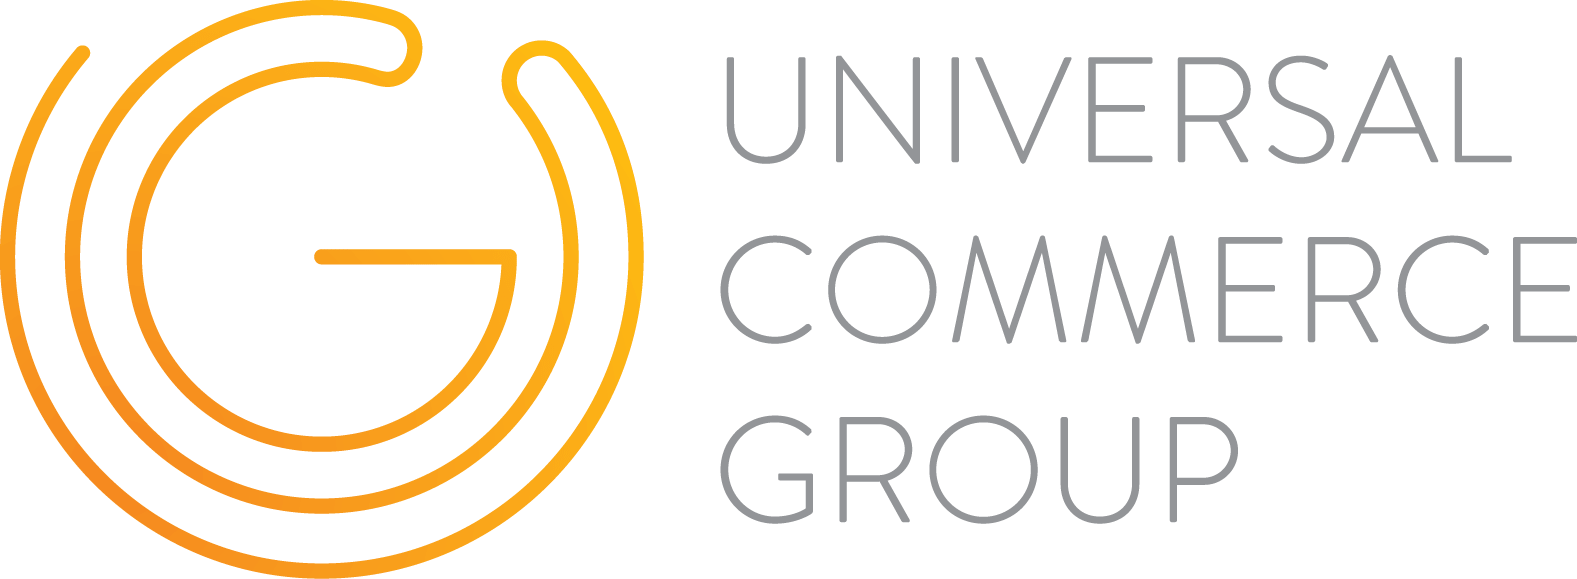 Universalcommercegroup.com